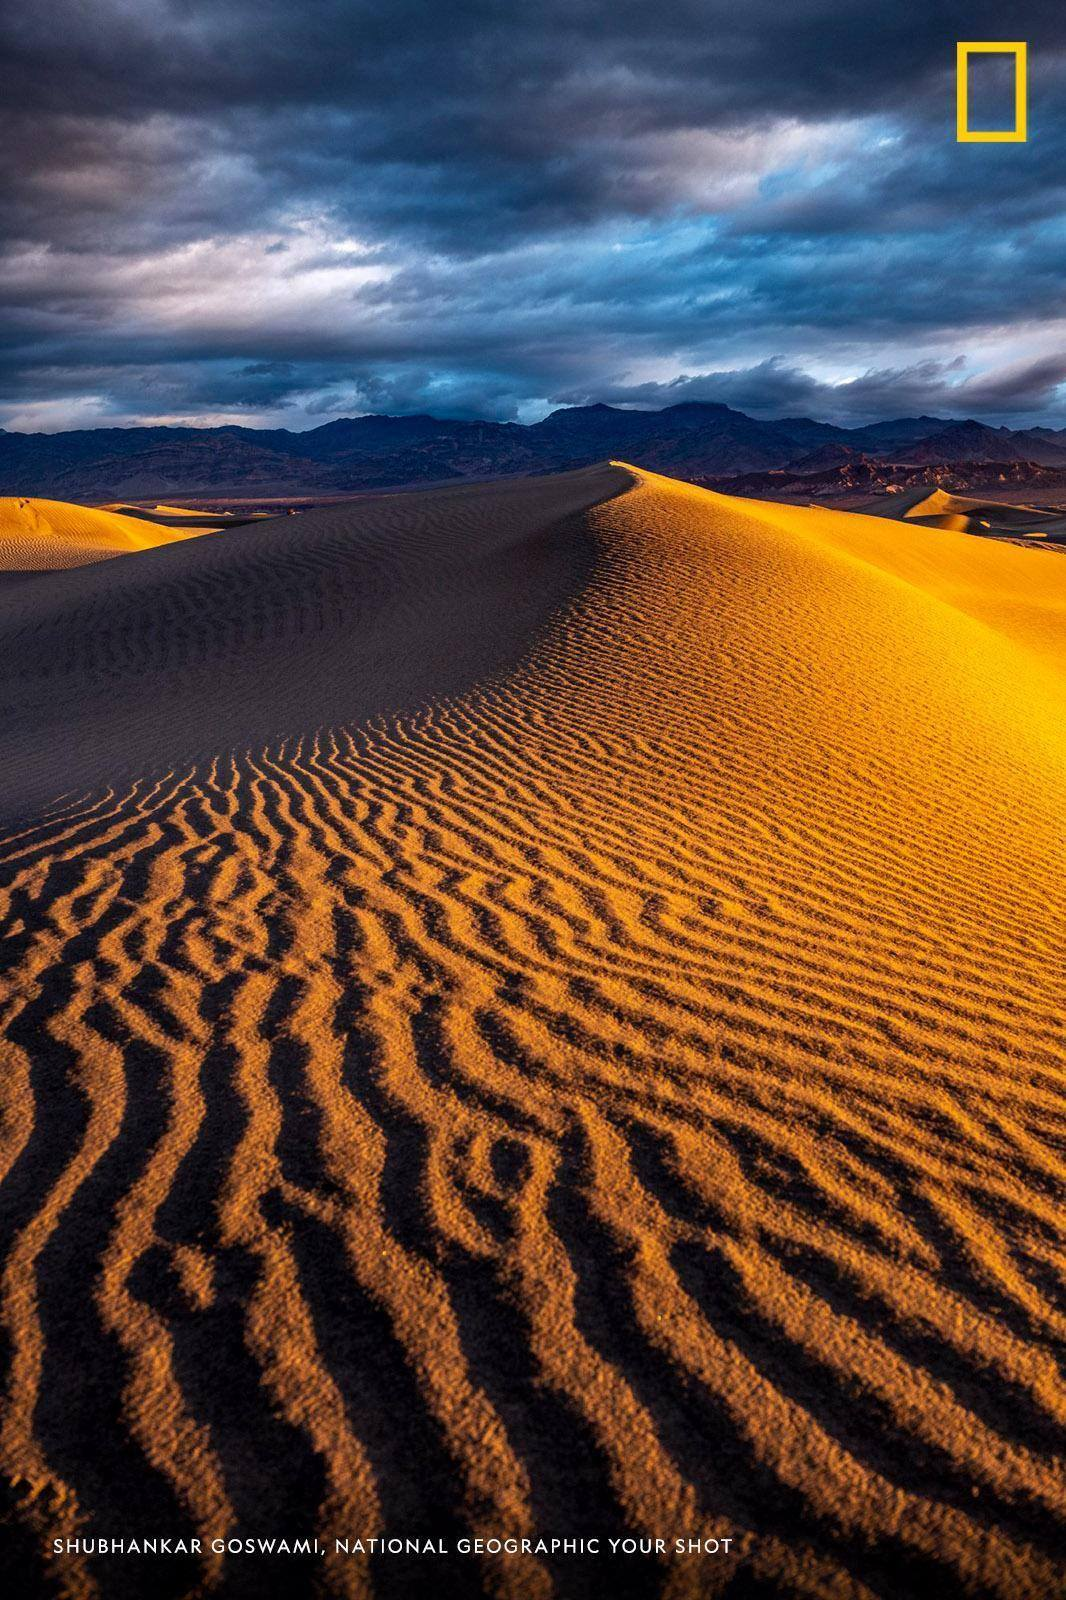 """""""It doesn't often rain in the Death Valley in California,"""" writes Your Shot photographer Shubhankar Goswami, who captured this stunning image in the moments following a brief storm. https://on.natgeo.com/2V43Sp0"""